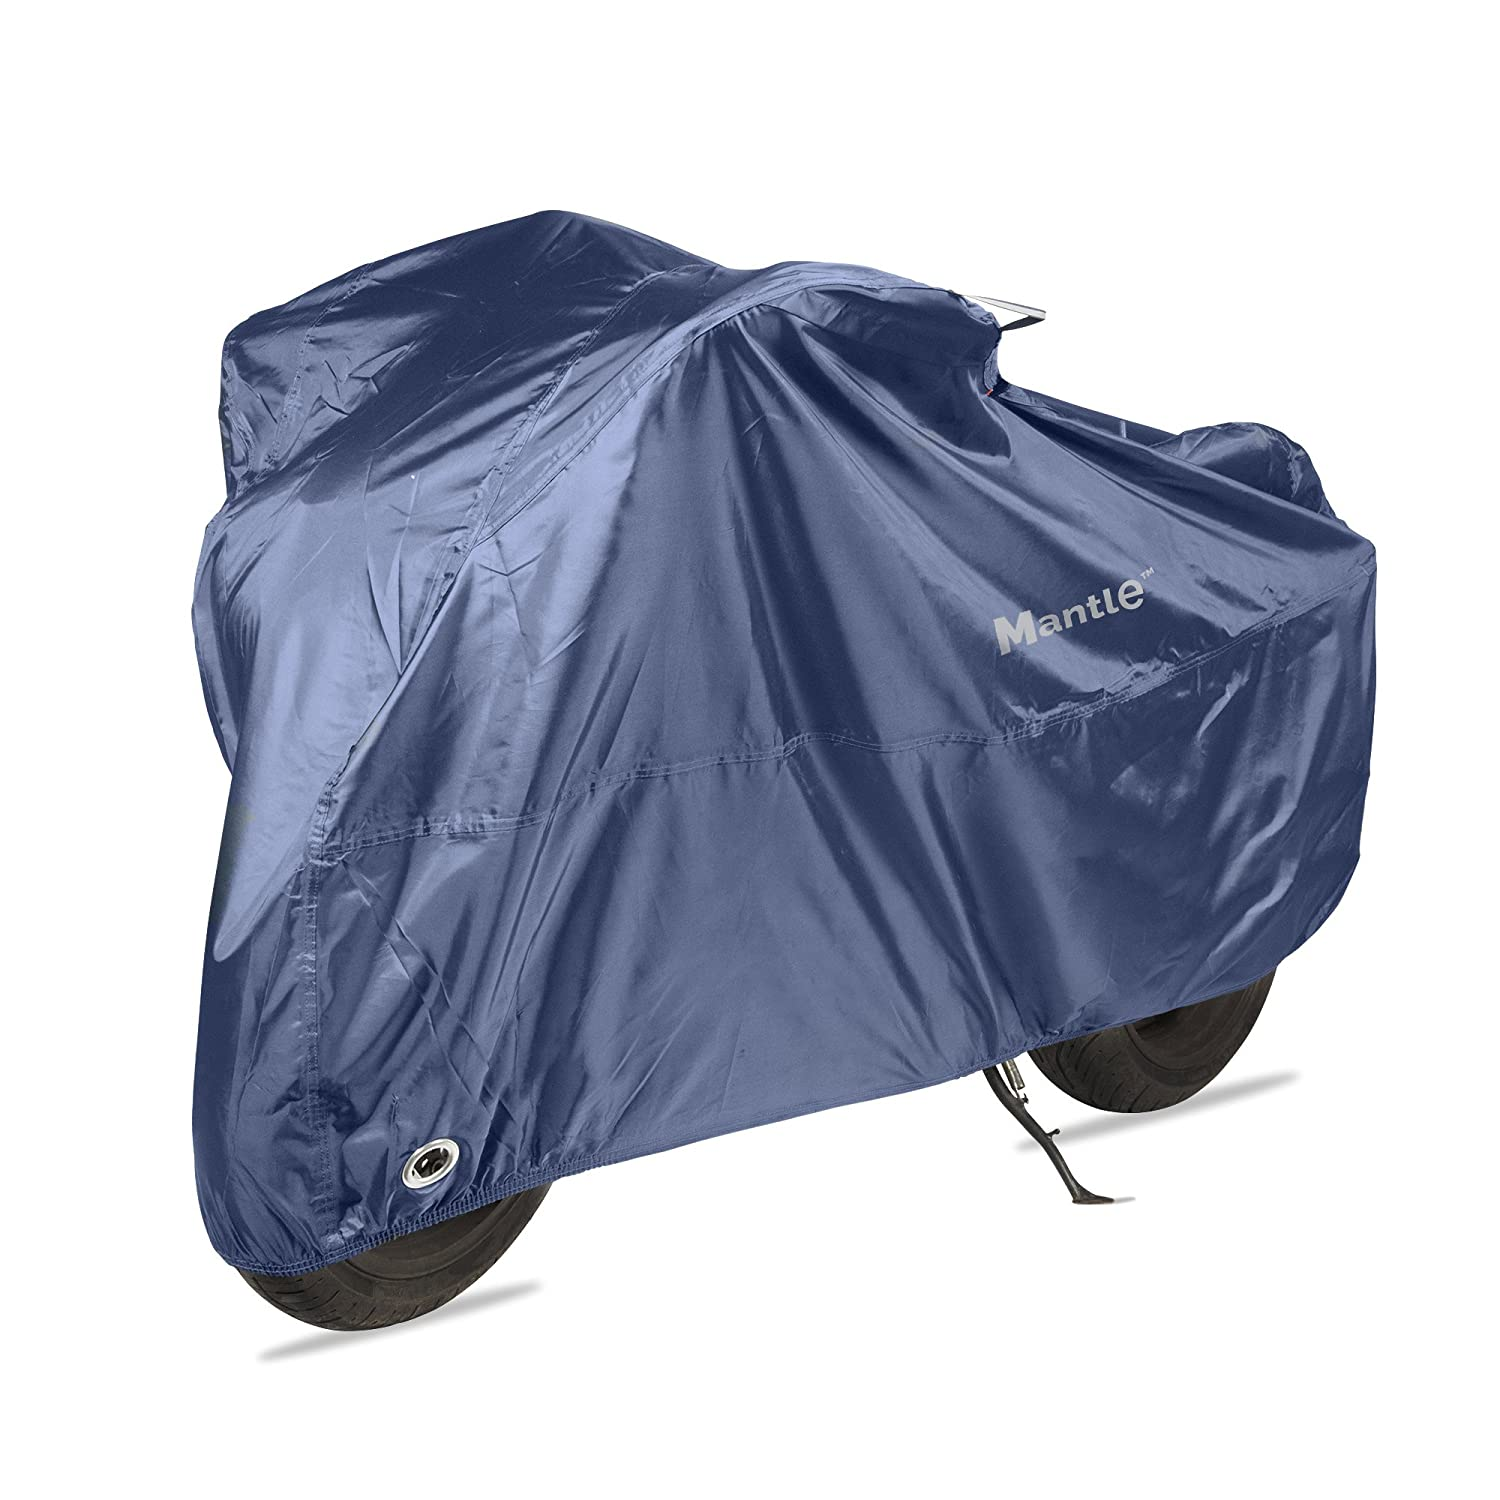 Waterproof Motorbike Cover for Outside Storage, Mantle Heavy duty Motorcycle Rain Covers, 210D Oxford Fabric - Dust, Rust & UV Protection, Wind Buckle, Lock Holes (XXXL - which will fit topbox)